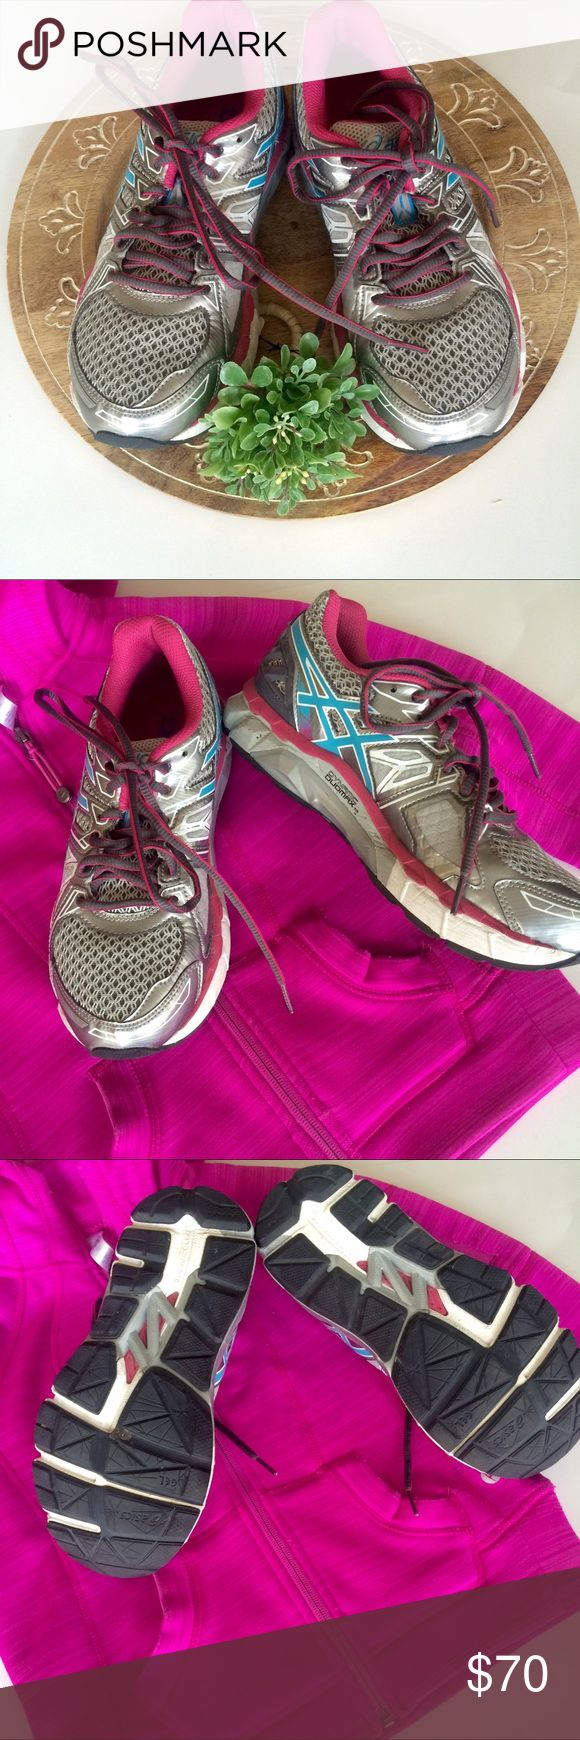 Asics fortify running shoes Great pair of Asics Gel fortify running tennis shoes. No longer available in stores. Worn twice! Size 6.5. Good for: running, cross-training. Sturdy and supportive. Color: Lightning/turquoise/Cabernet Asics Shoes Athletic Shoes